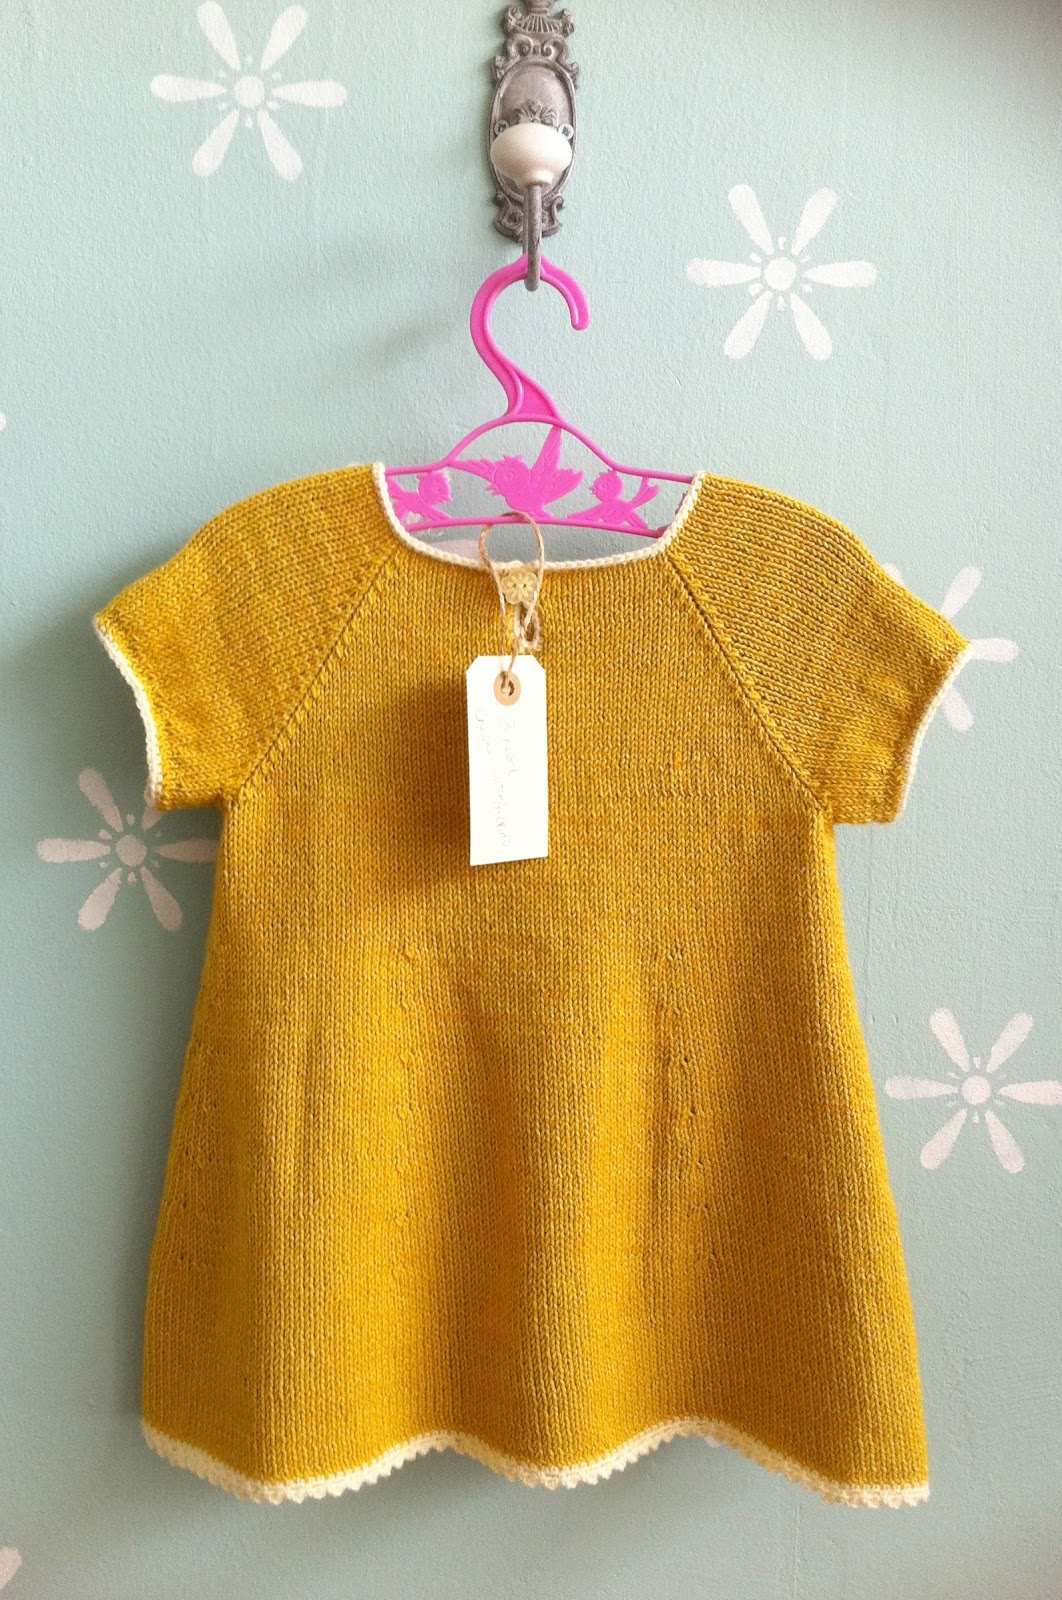 Knitting Pattern For A Baby Dress : erleperle: peachy dress